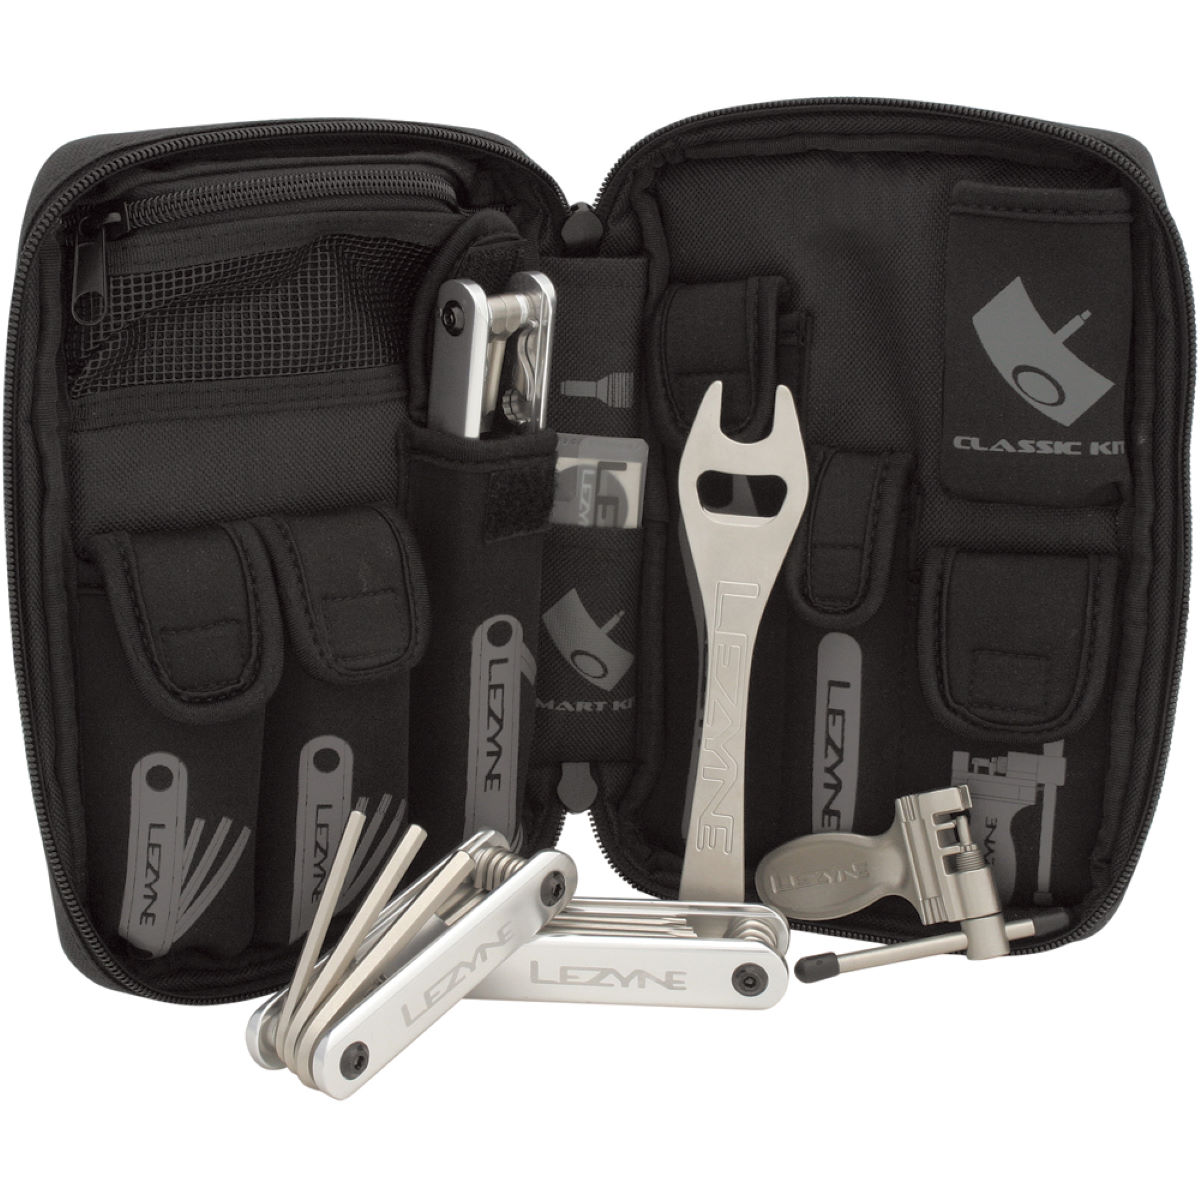 Lezyne Port-A-Shop Tool Kit